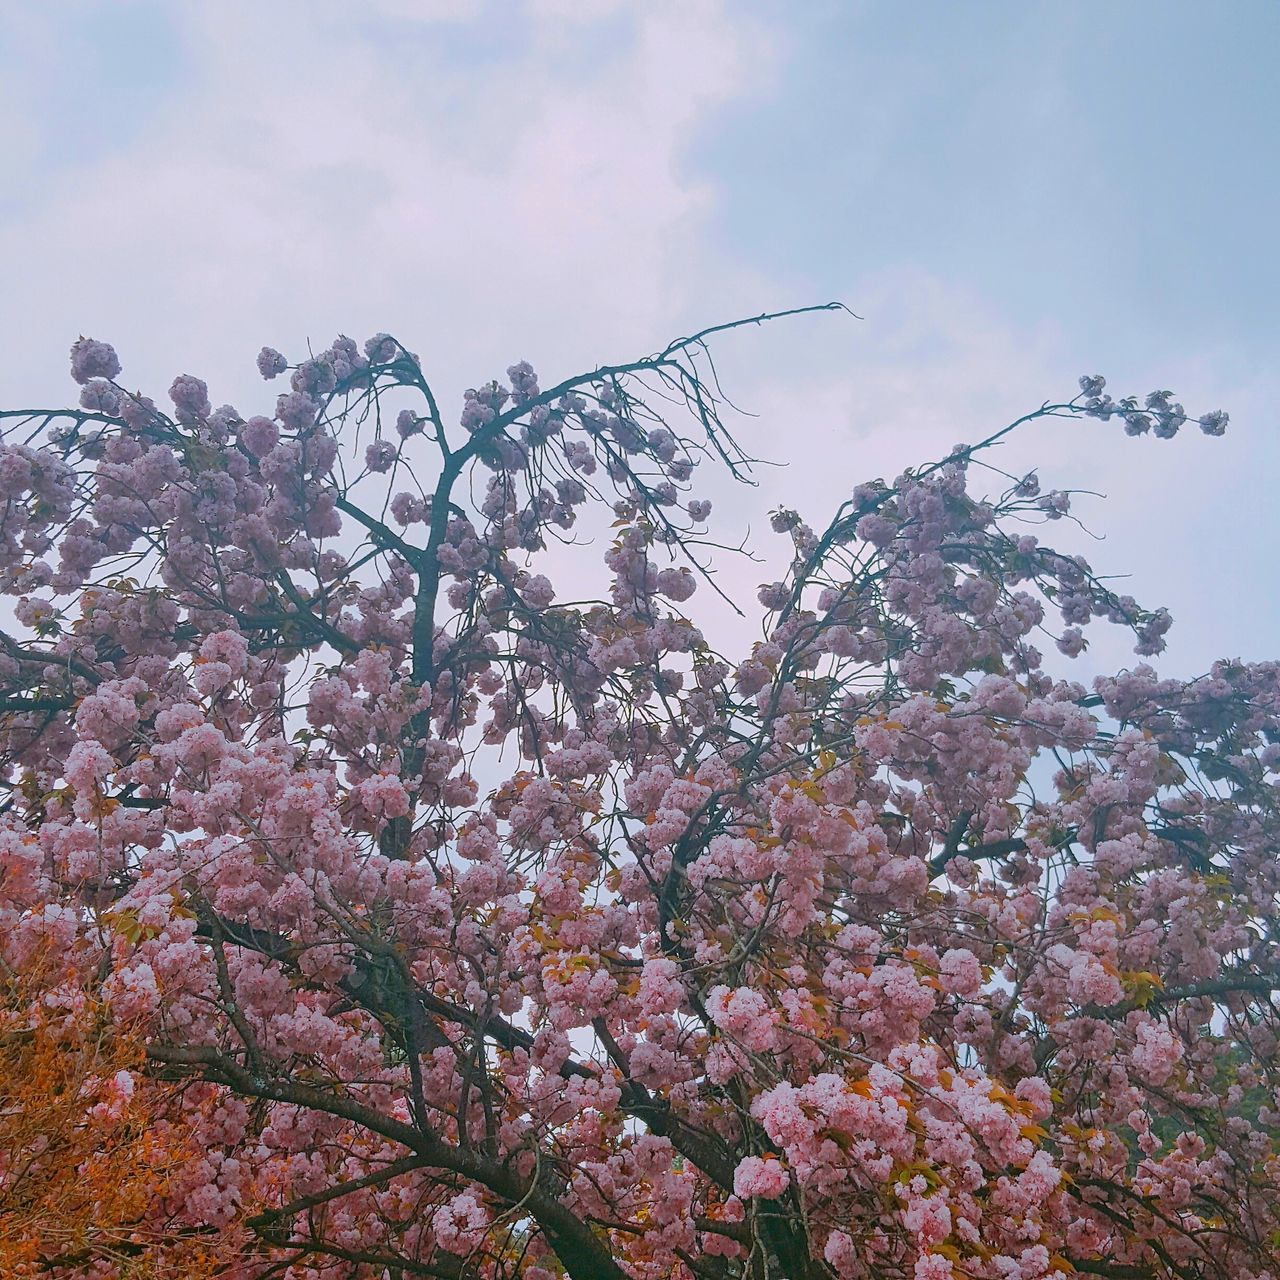 beauty in nature, tree, nature, low angle view, flower, sky, growth, no people, day, outdoors, fragility, blossom, branch, freshness, springtime, cloud - sky, tranquility, scenics, close-up